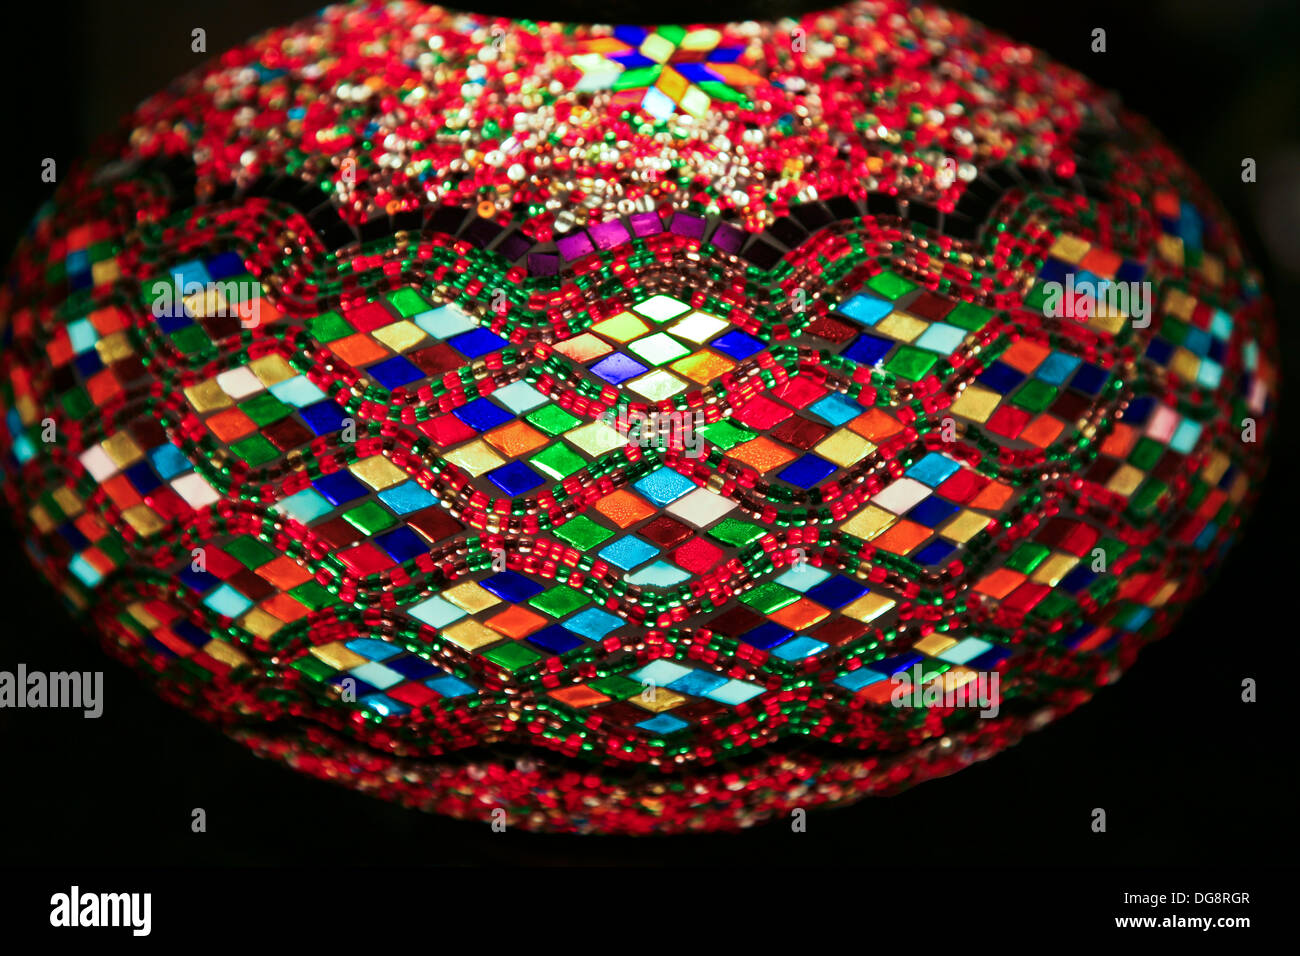 Abstract Multicolour Shapes Of Colorful Red Stained Glass Round Globe Stock Photo Alamy